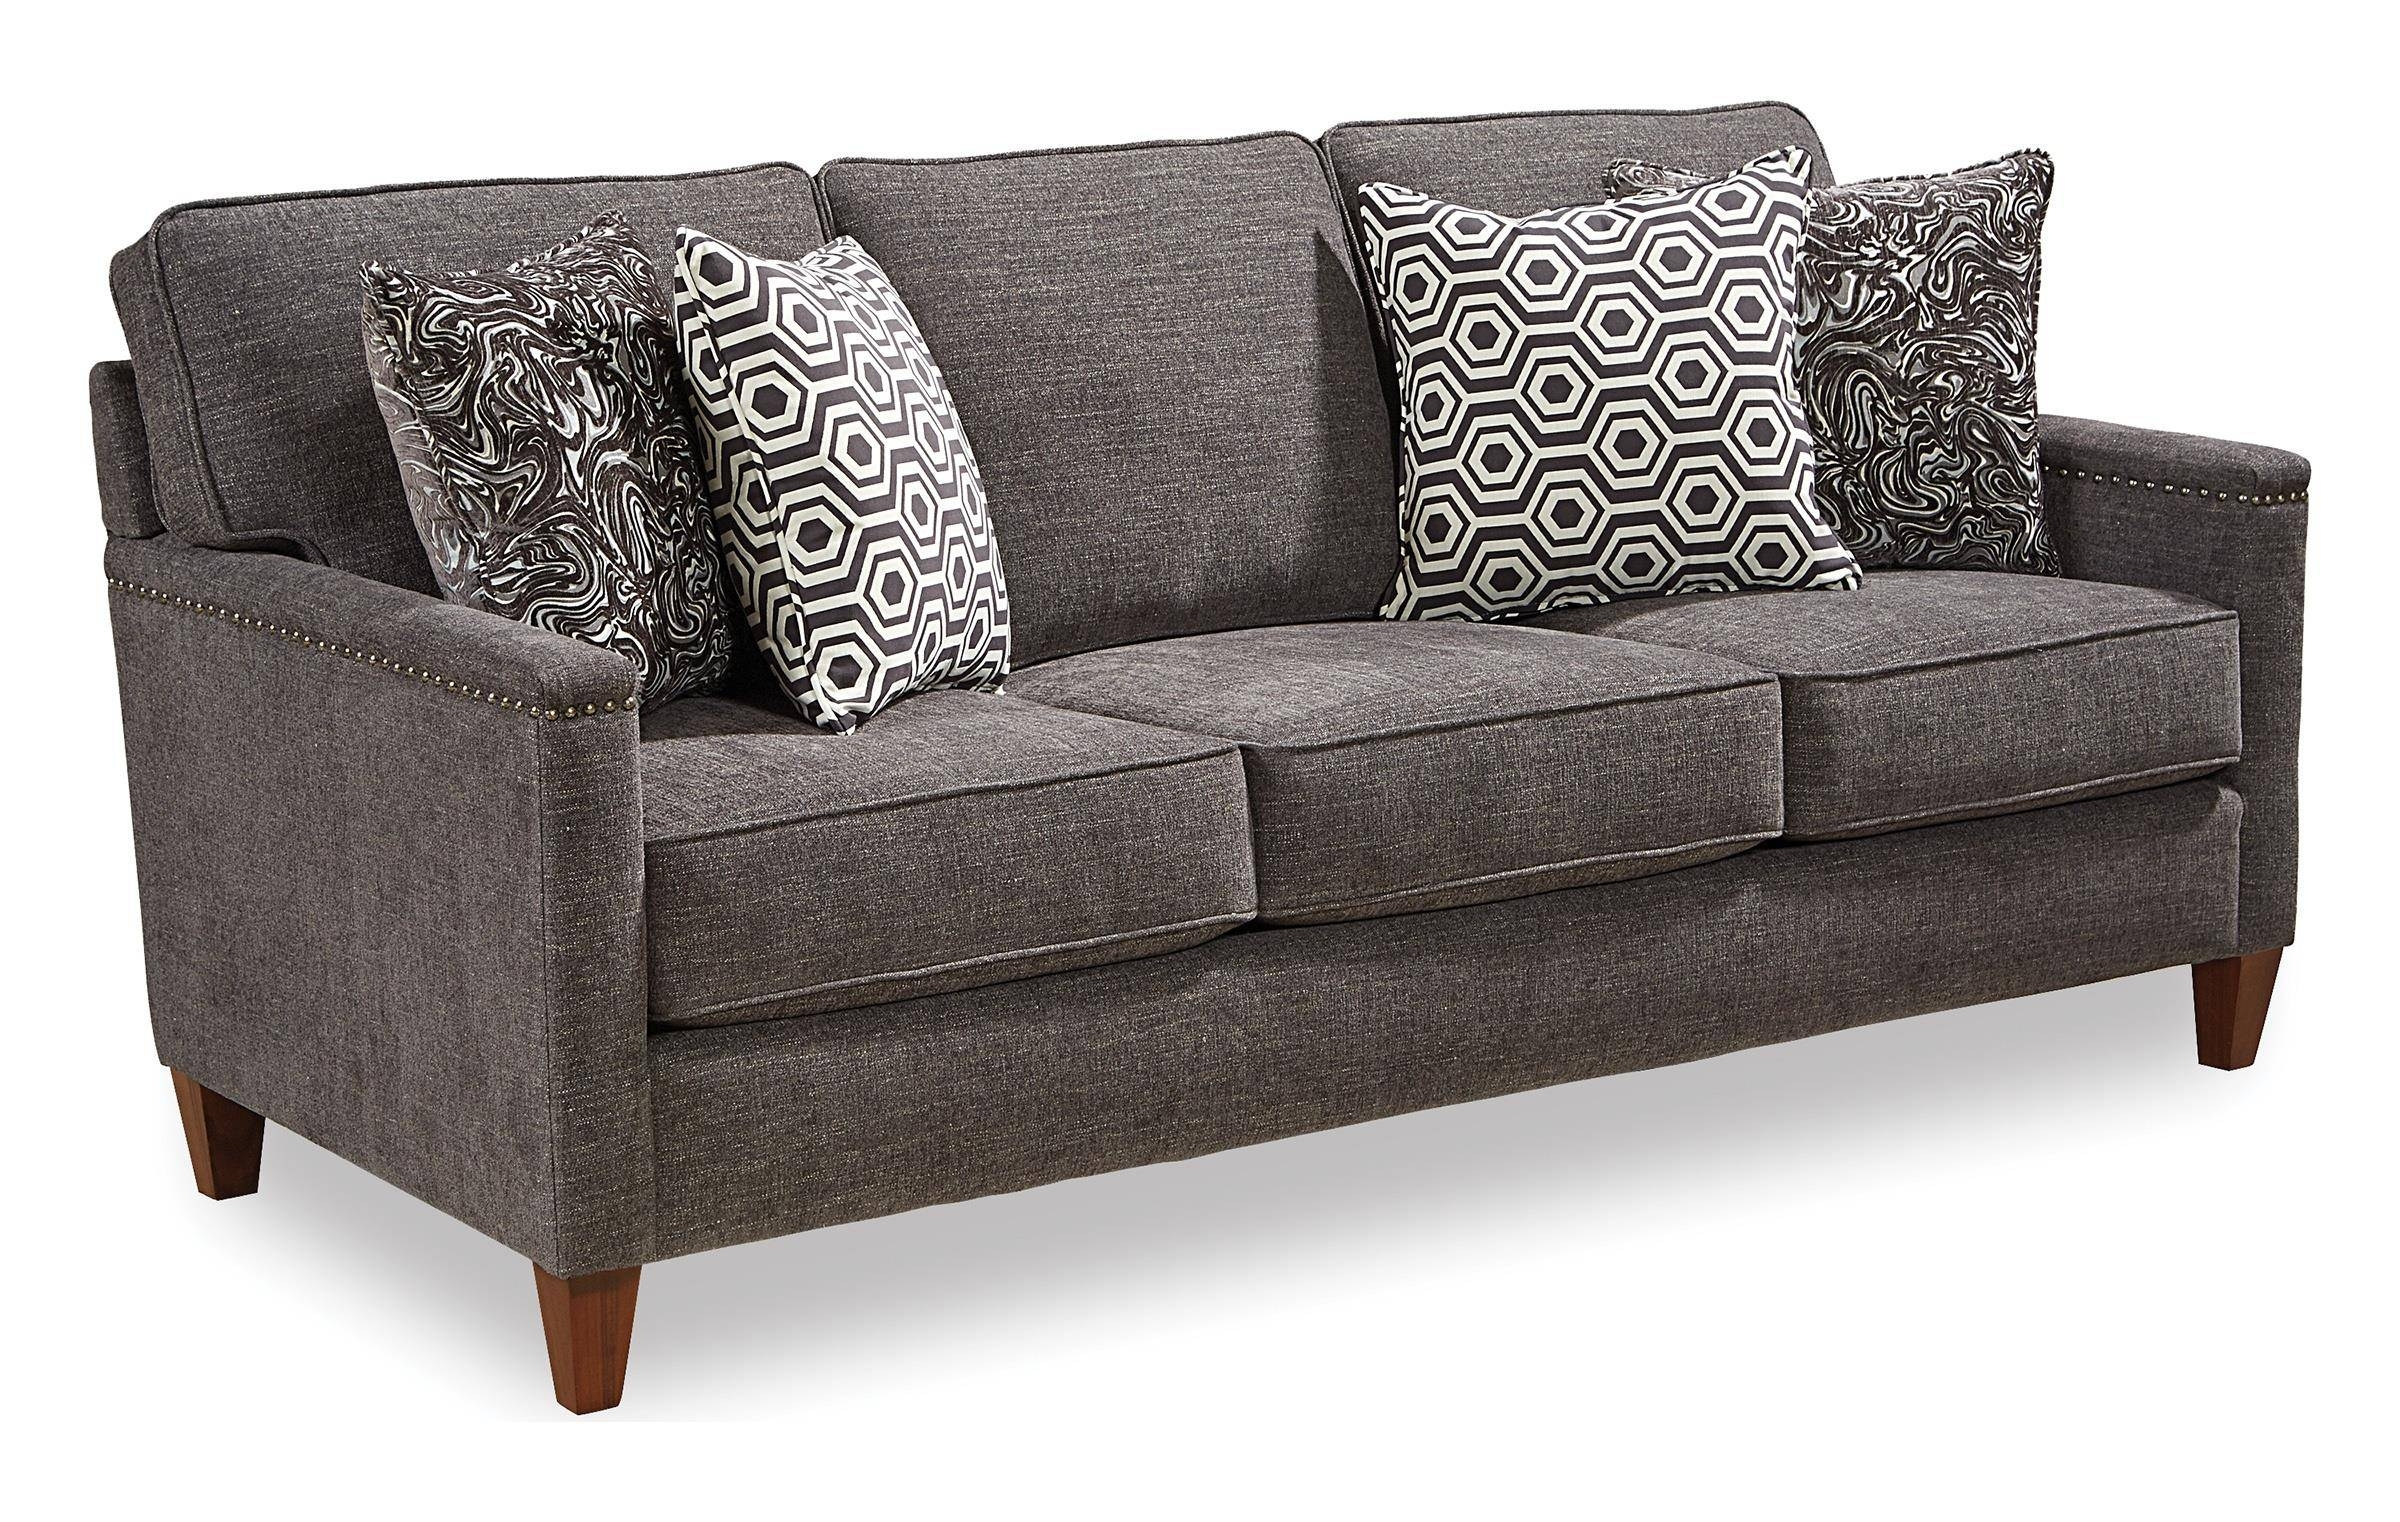 Broyhill Furniture Lawson Contemporary Sofa With Track Arms And pertaining to Broyhill Sectional Sofa (Image 10 of 30)